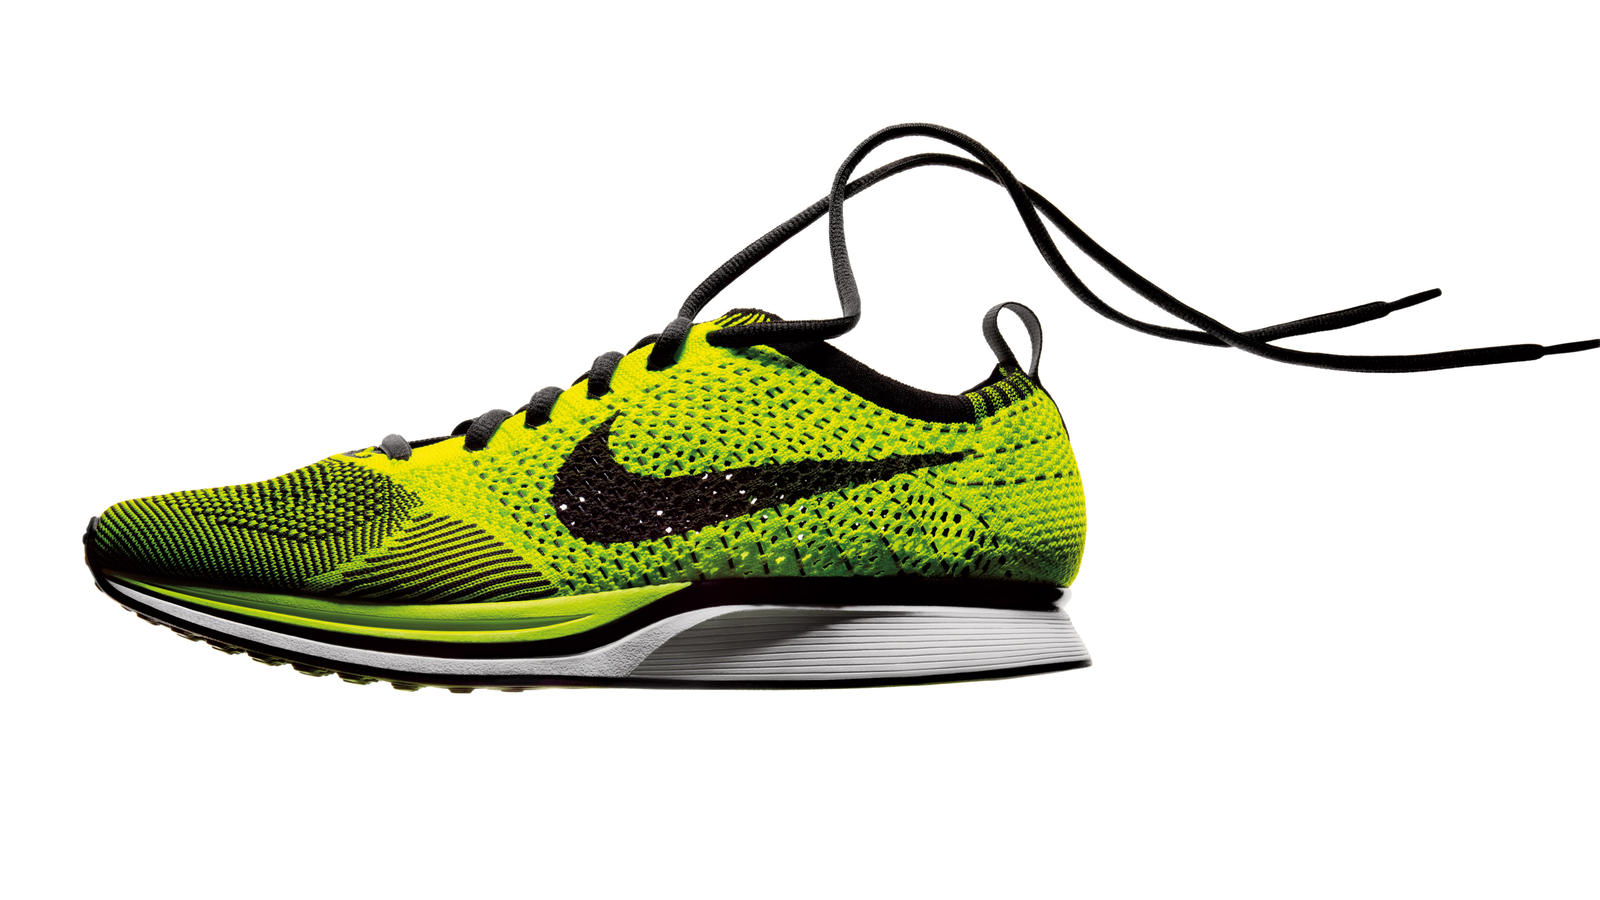 NIKE engineers knit for performance - Nike News 072e94da4d